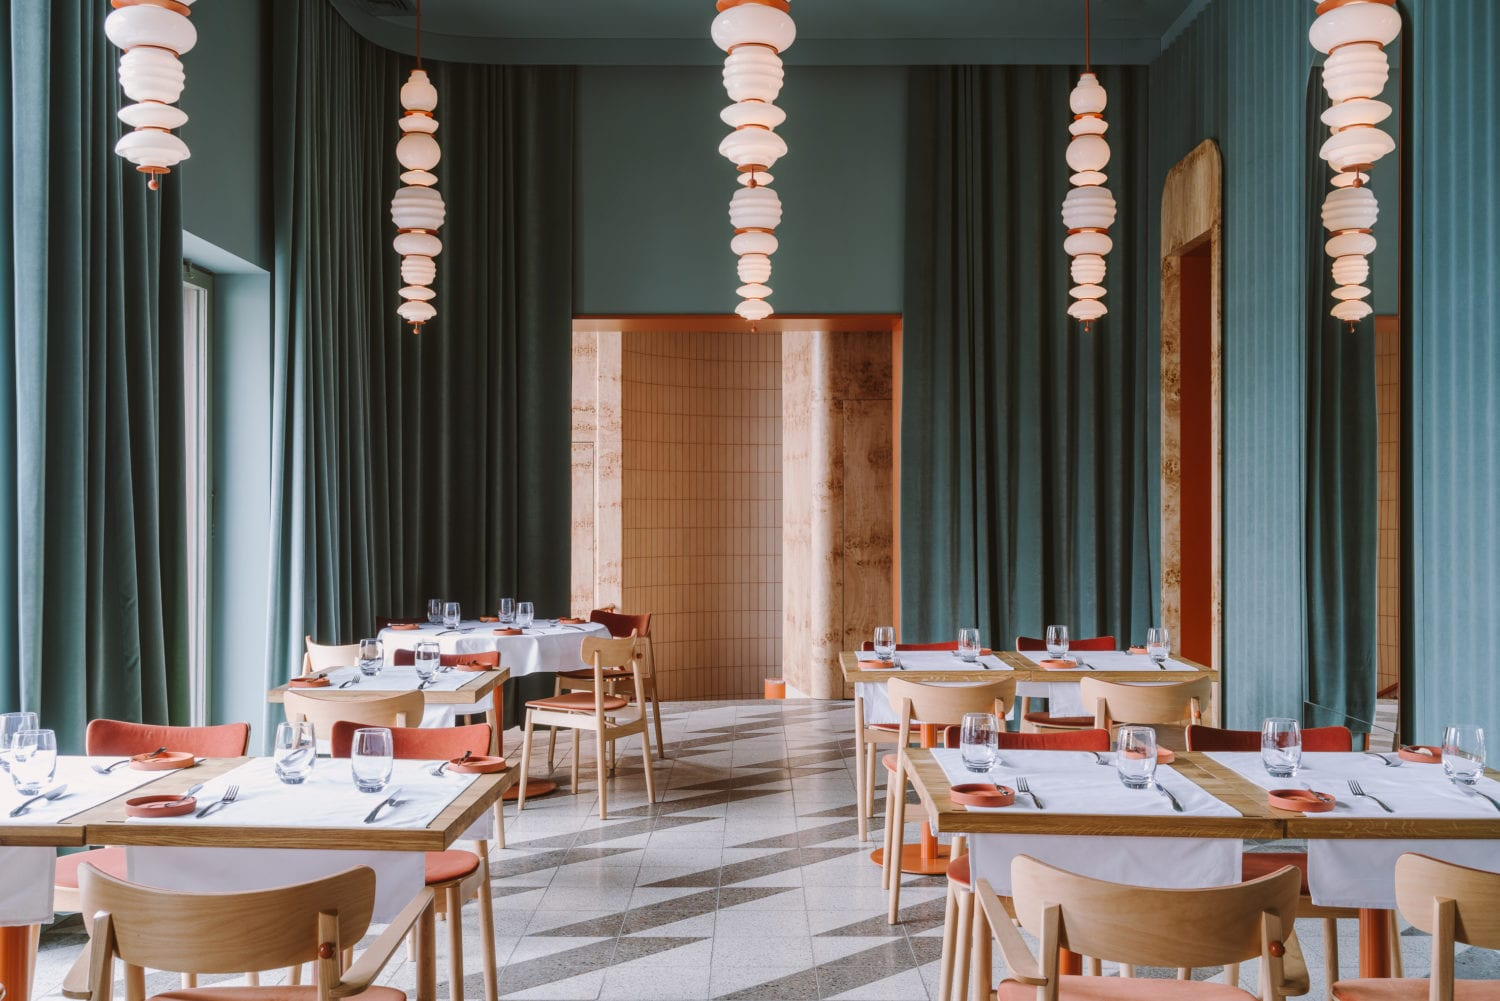 Opasly Tom Restaurant In Warsaw Poland By Buck Studio Yellowtrace 05